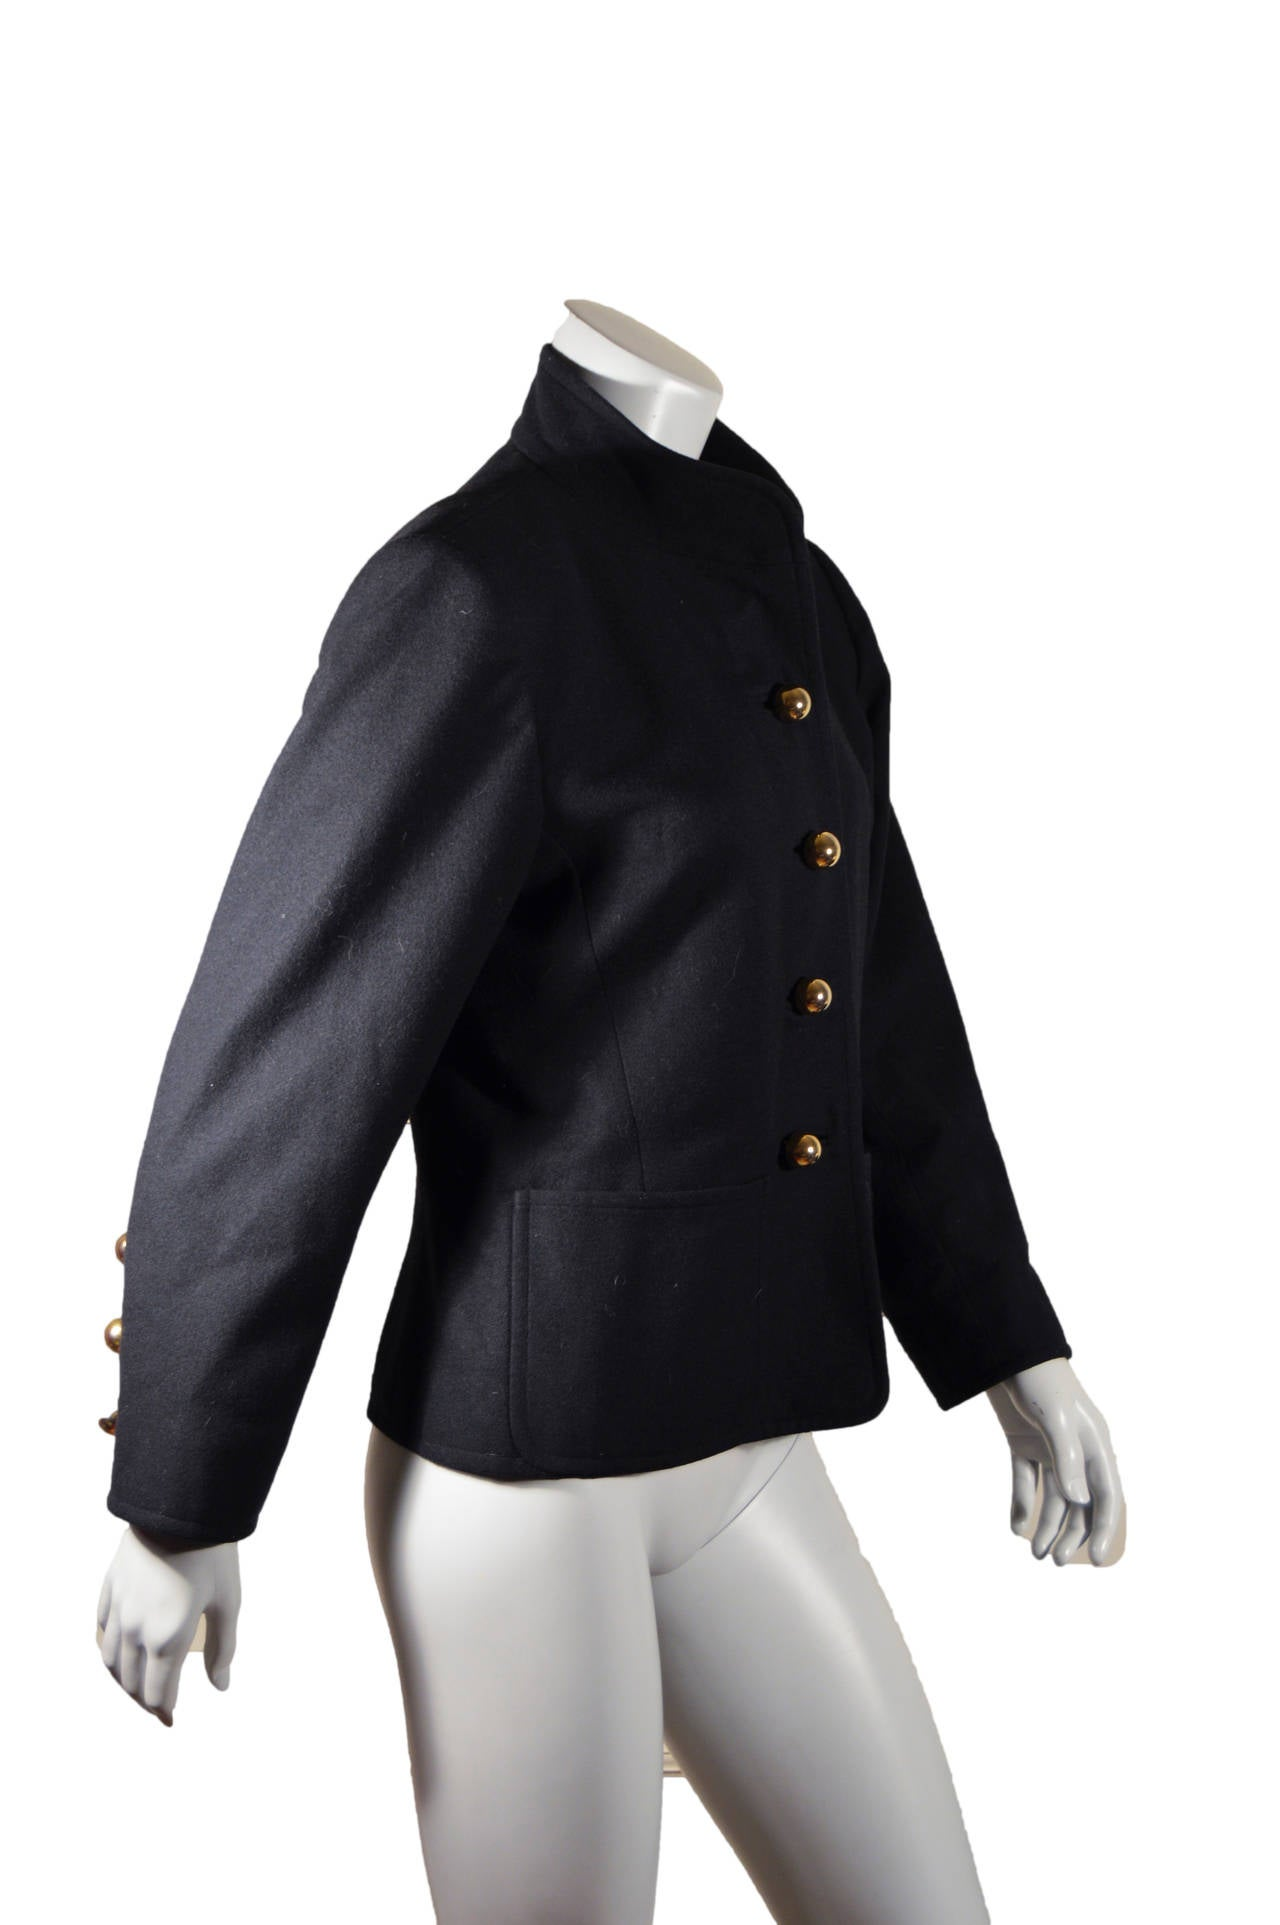 Vintage black YSL Rive Gauche Coat. The stand up collar and round gold buttons give this coat a military feel. Gold buttons at wrists. Wide front pockets. Lined. Tagged a size 42.